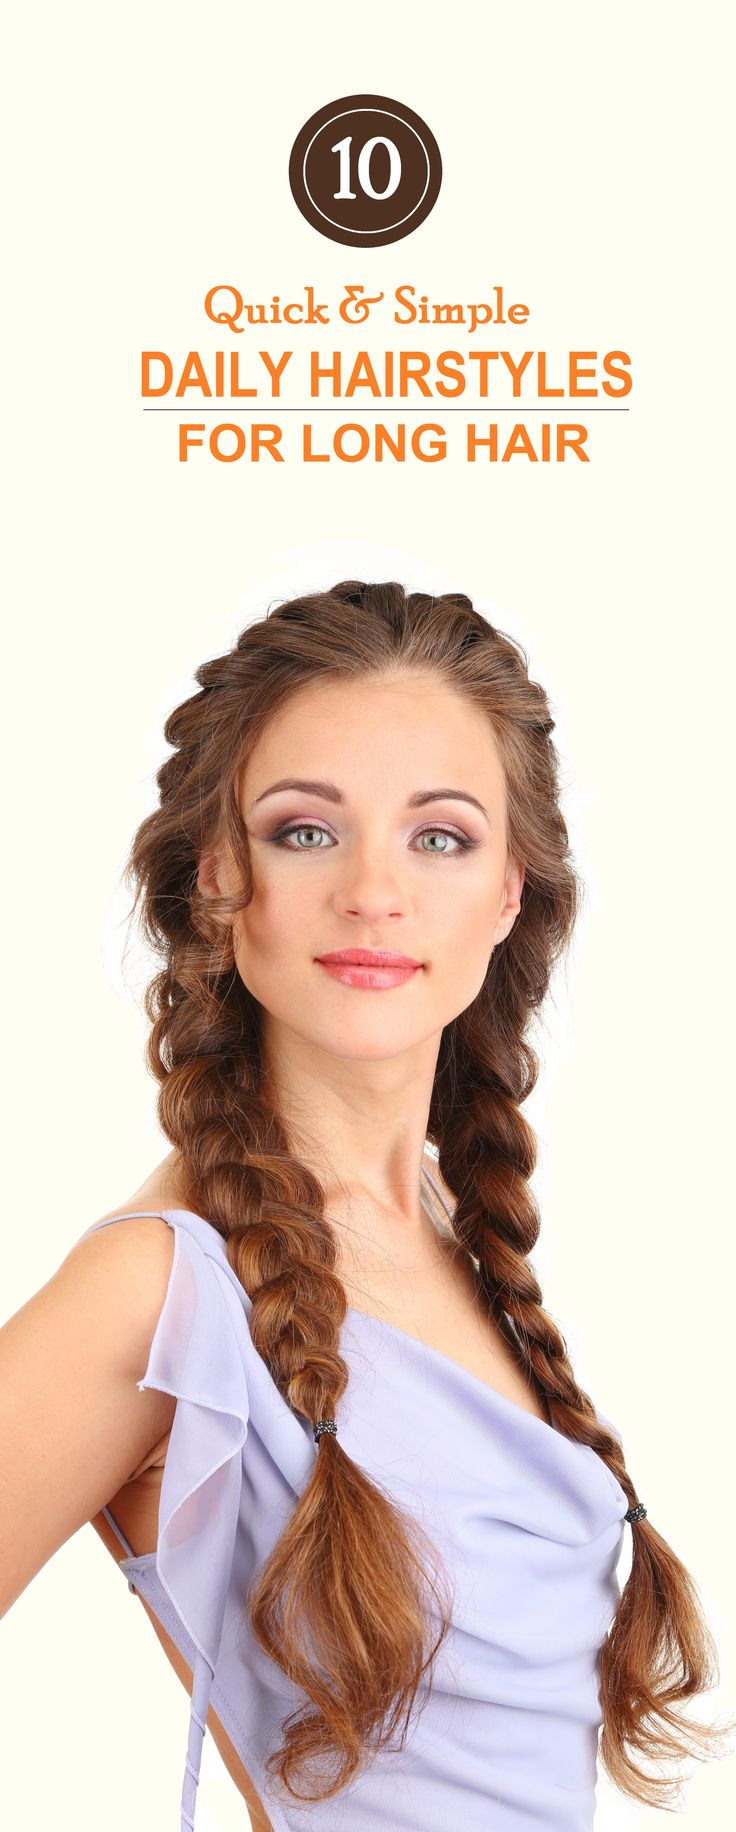 everyday hair styles for long hair 25 best daily hairstyles ideas on prom 7085 | f47df43080633f80b0803aae6490297f everyday hair styles for long hair hairstyles for long hair everyday